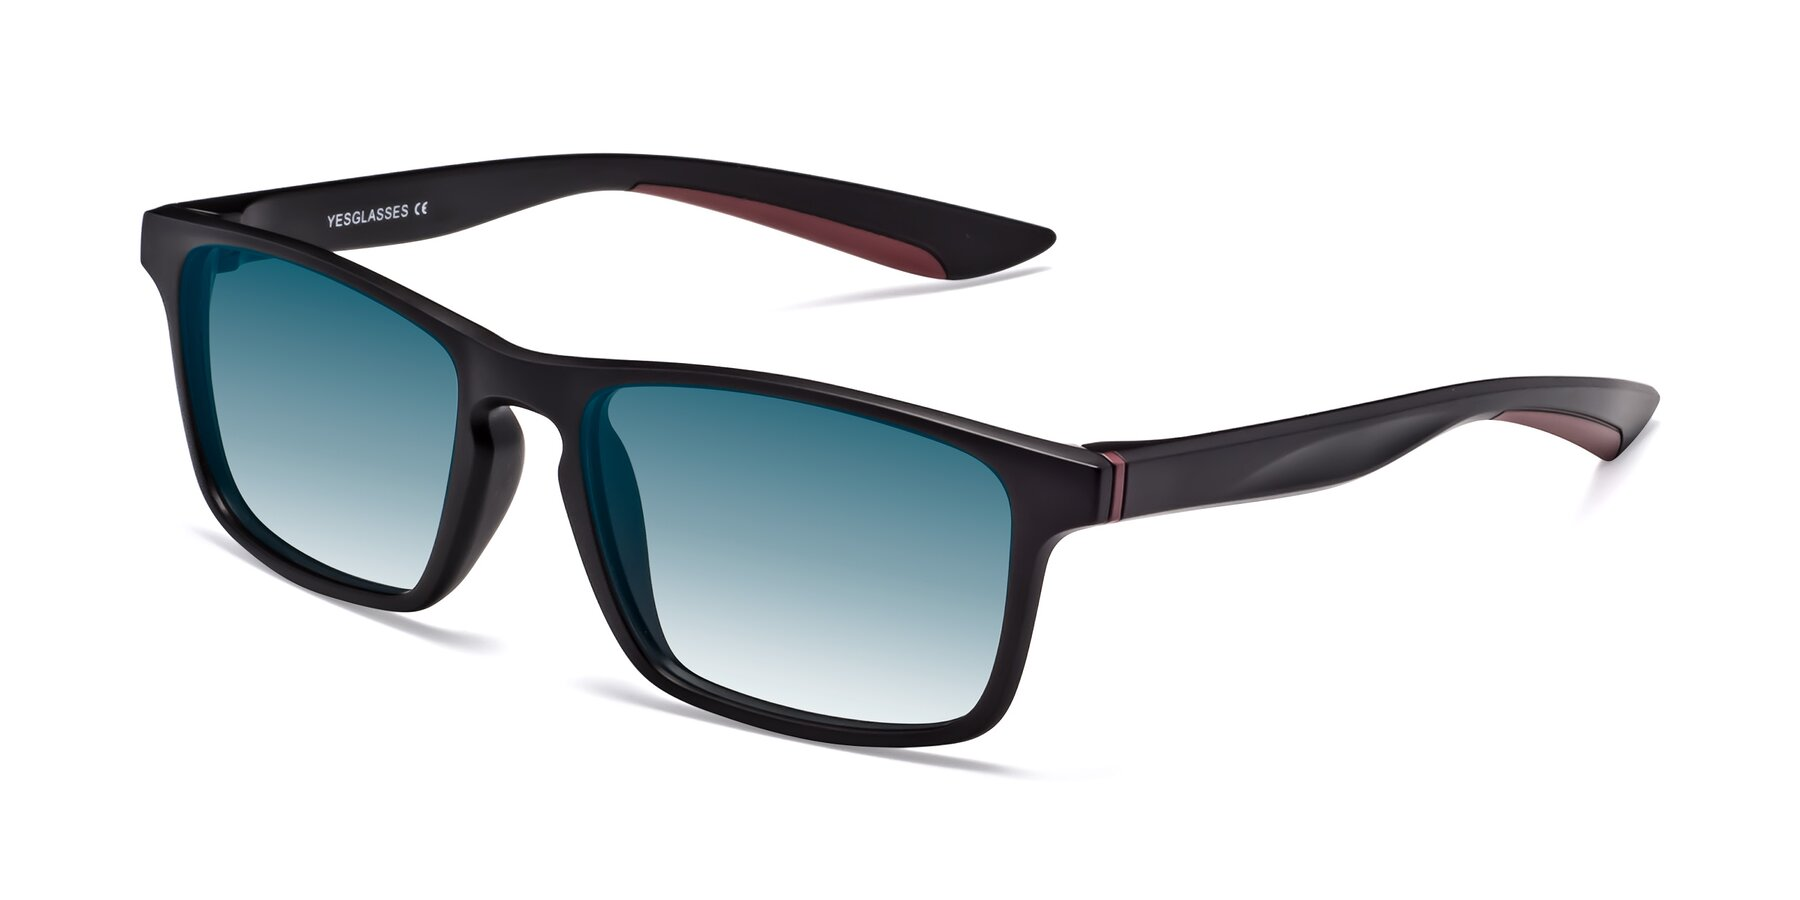 Angle of Passion in Matte Black-Wine with Blue Gradient Lenses